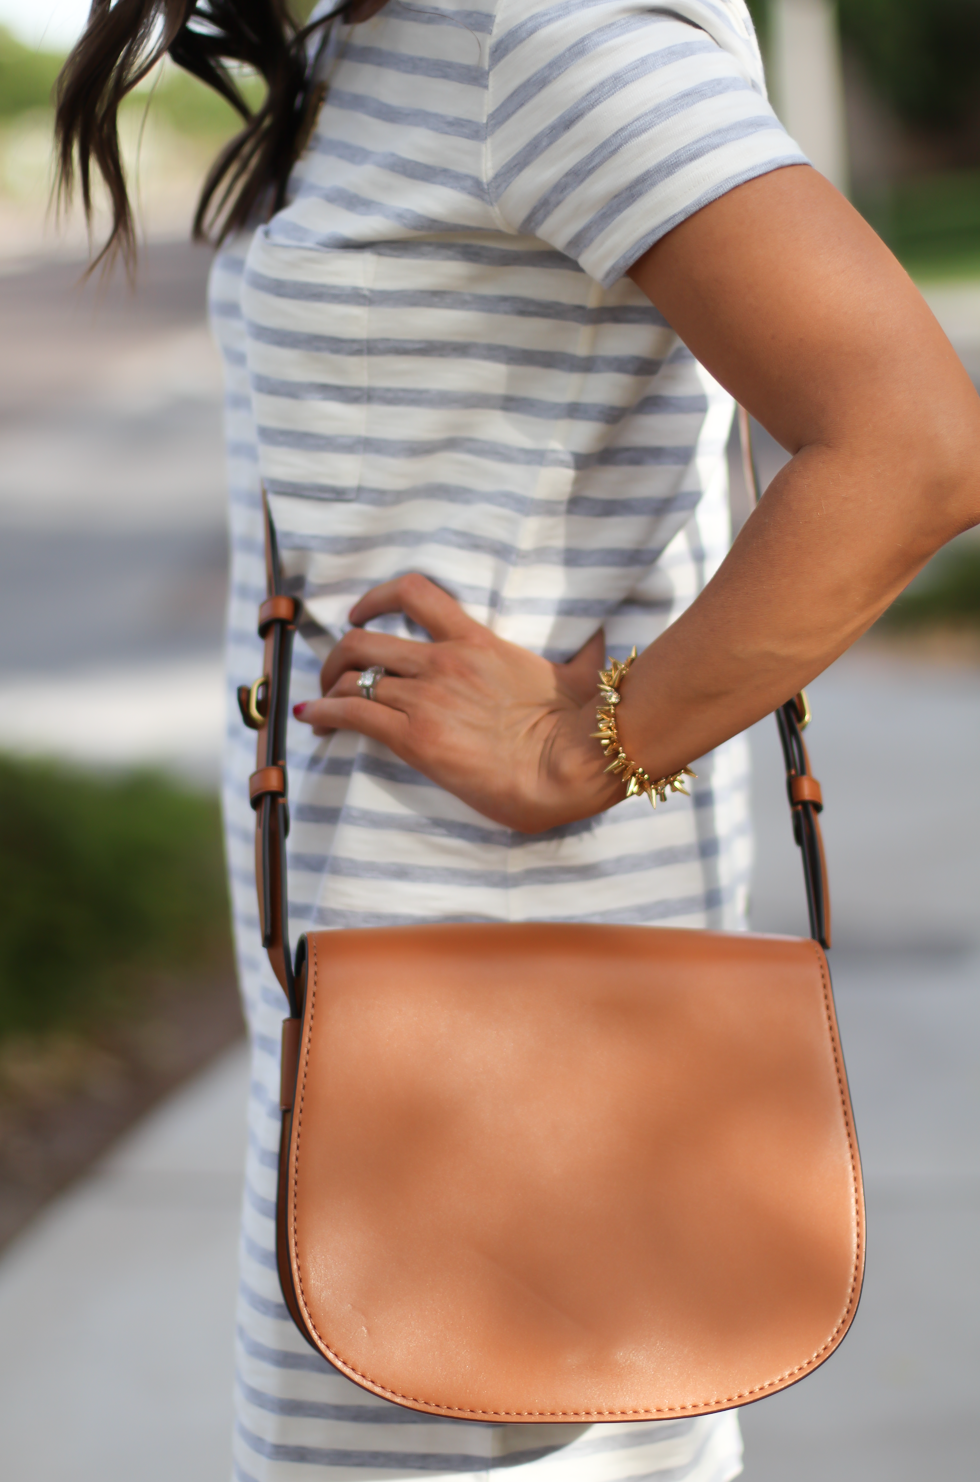 Grey Striped Button Back Short Sleeve Dress, Cognac Leather Wedge Sandals, Cognac Saddlebag, Madewell, Tory Burch 22